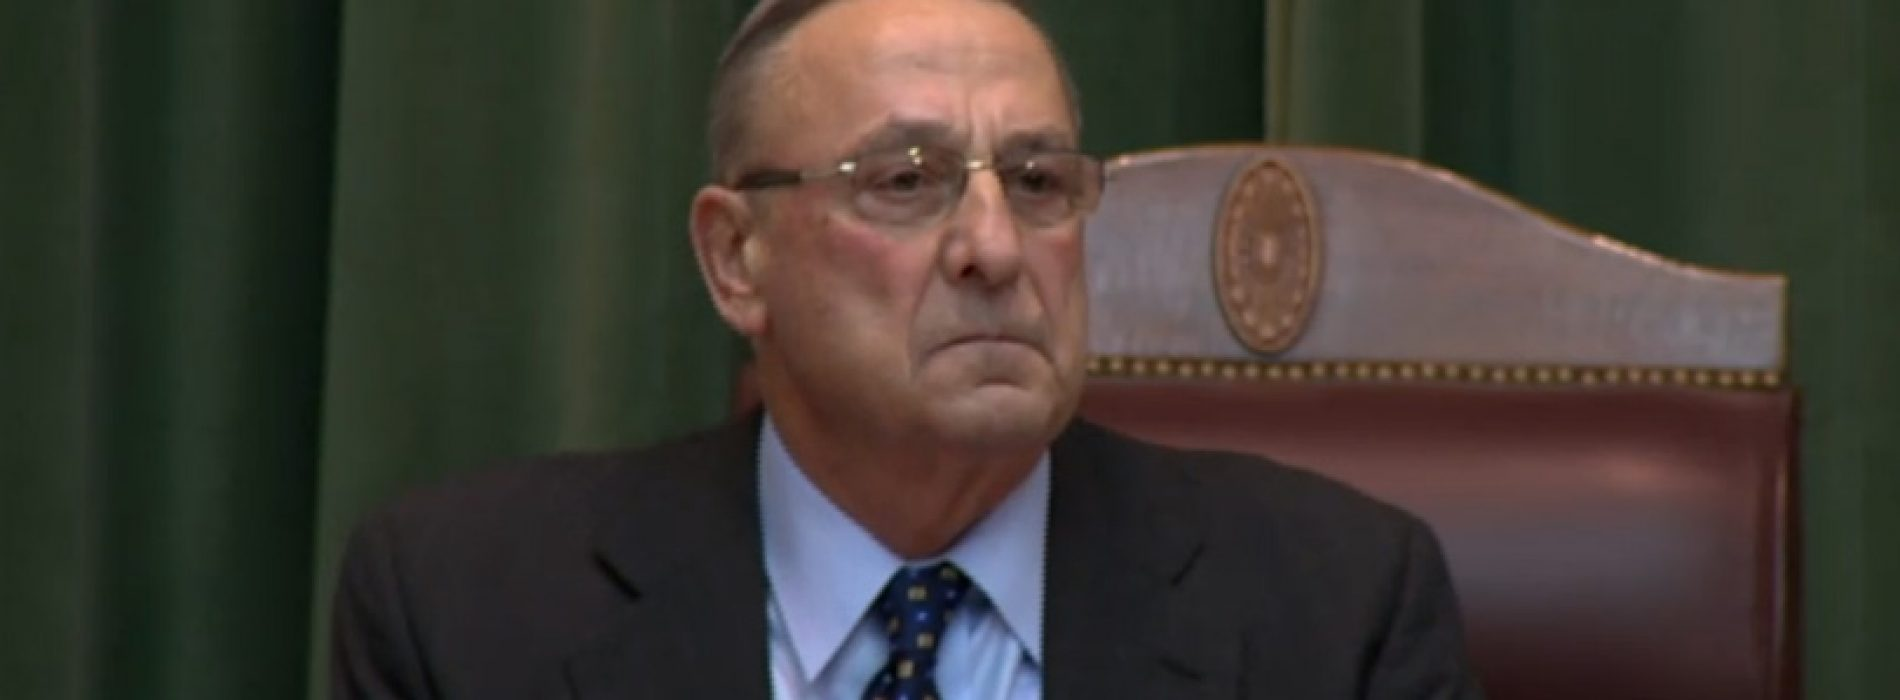 Five blatant lies Gov. LePage told about the minimum wage during his State of the State